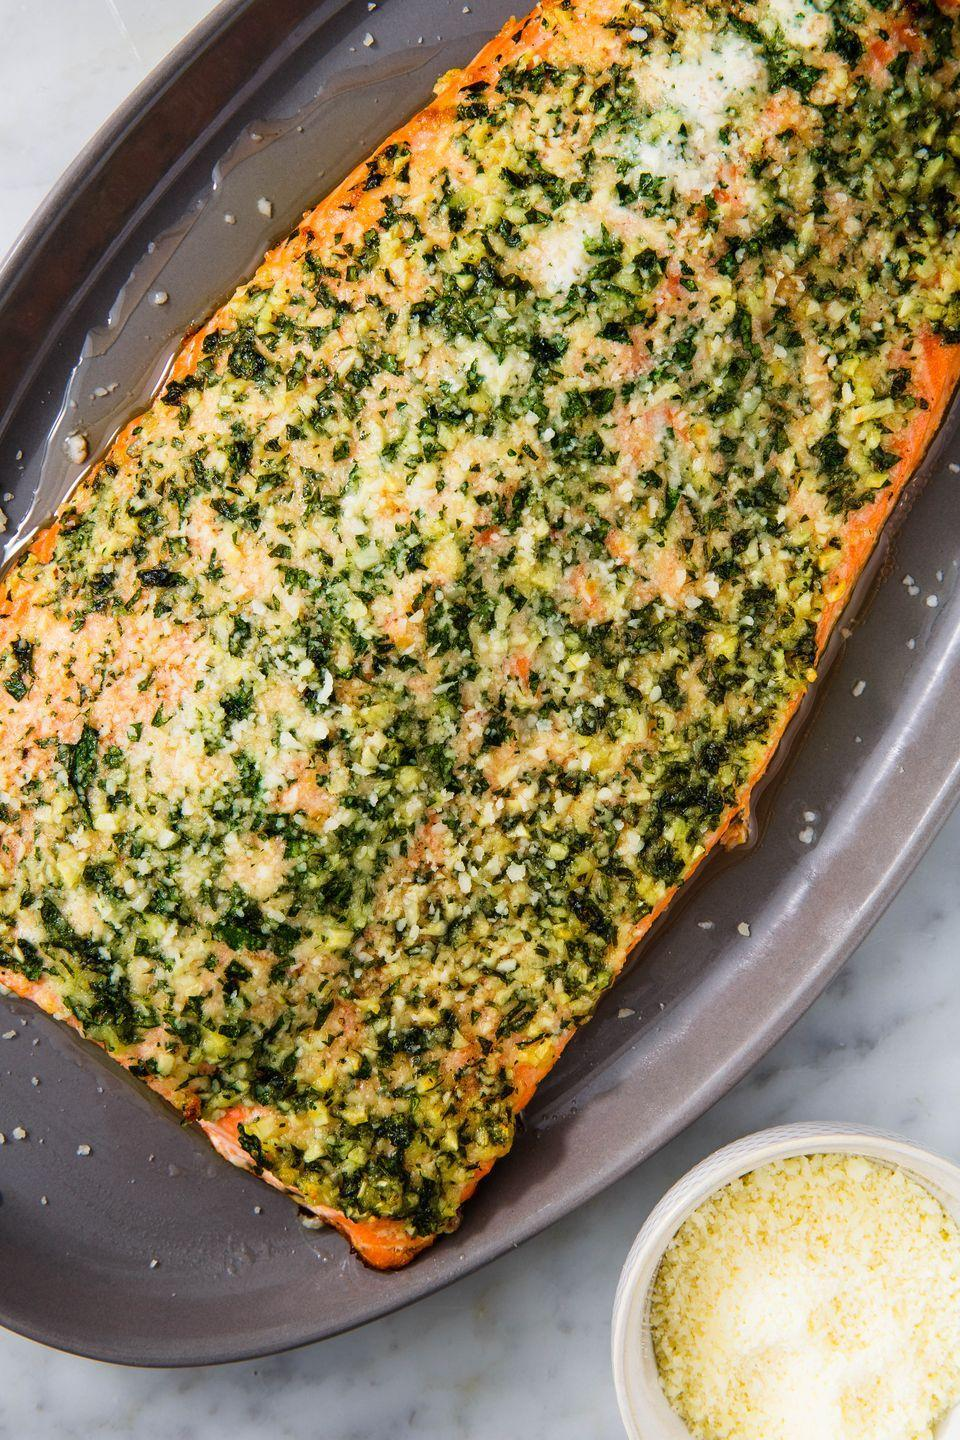 """<p>Butter and parm are truly the keys to our heart.</p><p>Get the recipe from <a href=""""https://www.delish.com/cooking/recipe-ideas/a23495680/keto-salmon-recipe/"""" rel=""""nofollow noopener"""" target=""""_blank"""" data-ylk=""""slk:Delish"""" class=""""link rapid-noclick-resp"""">Delish</a>.</p><p><a class=""""link rapid-noclick-resp"""" href=""""https://www.amazon.com/dp/1635653894?tag=syn-yahoo-20&ascsubtag=%5Bartid%7C1782.g.26308204%5Bsrc%7Cyahoo-us"""" rel=""""nofollow noopener"""" target=""""_blank"""" data-ylk=""""slk:BUY NOW"""">BUY NOW</a> <strong>Delish Cookbook,</strong> <strong><em>Keto For Carb Lovers, amazon.com</em></strong></p>"""